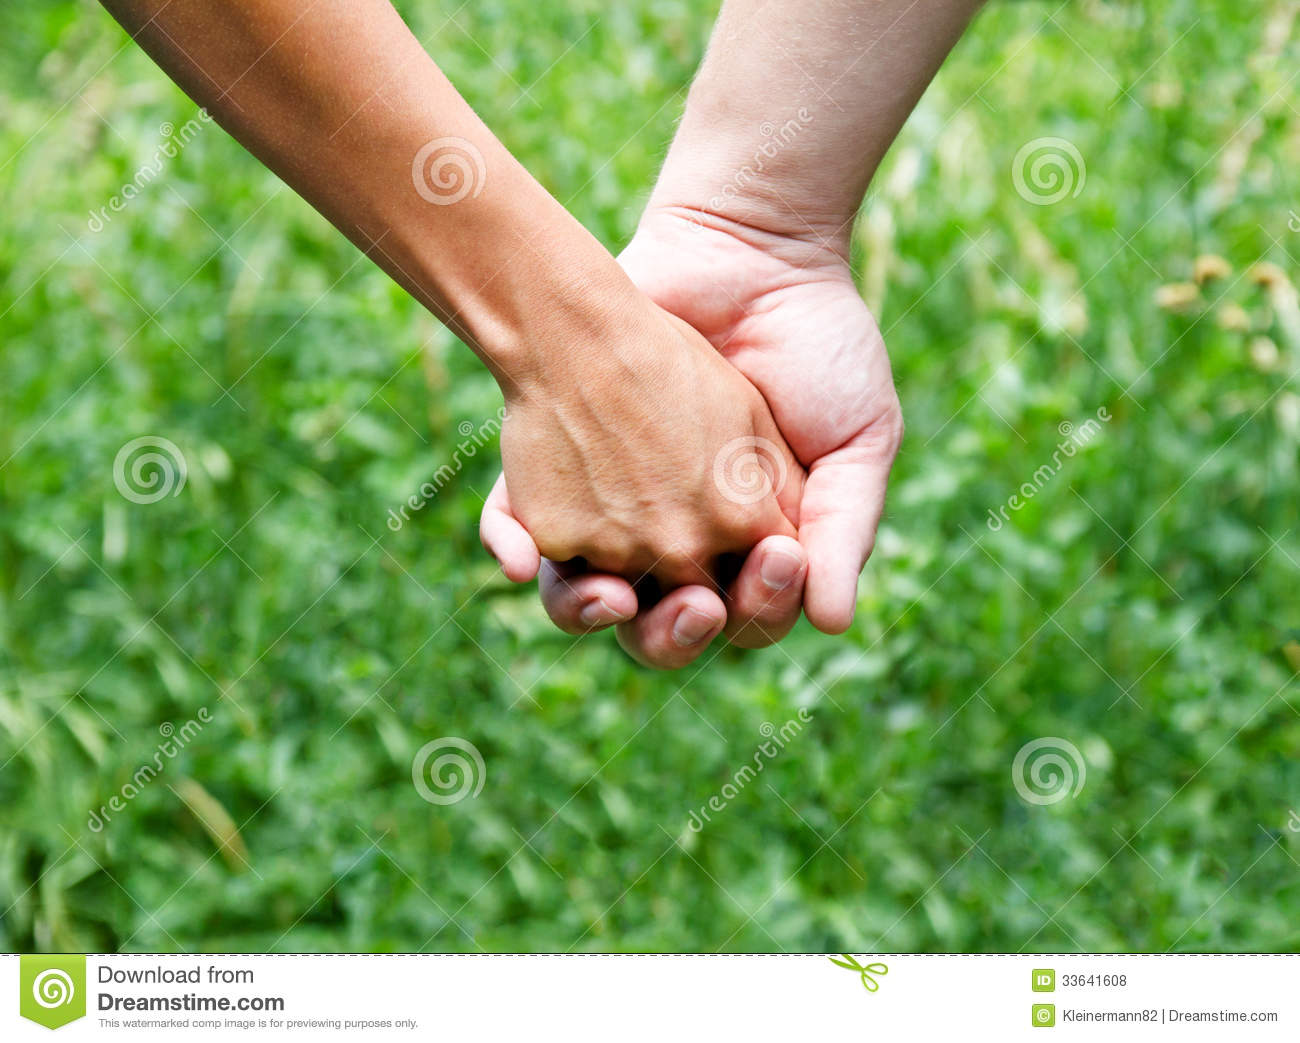 Holding Hands Against A Green Background Royalty Free ...